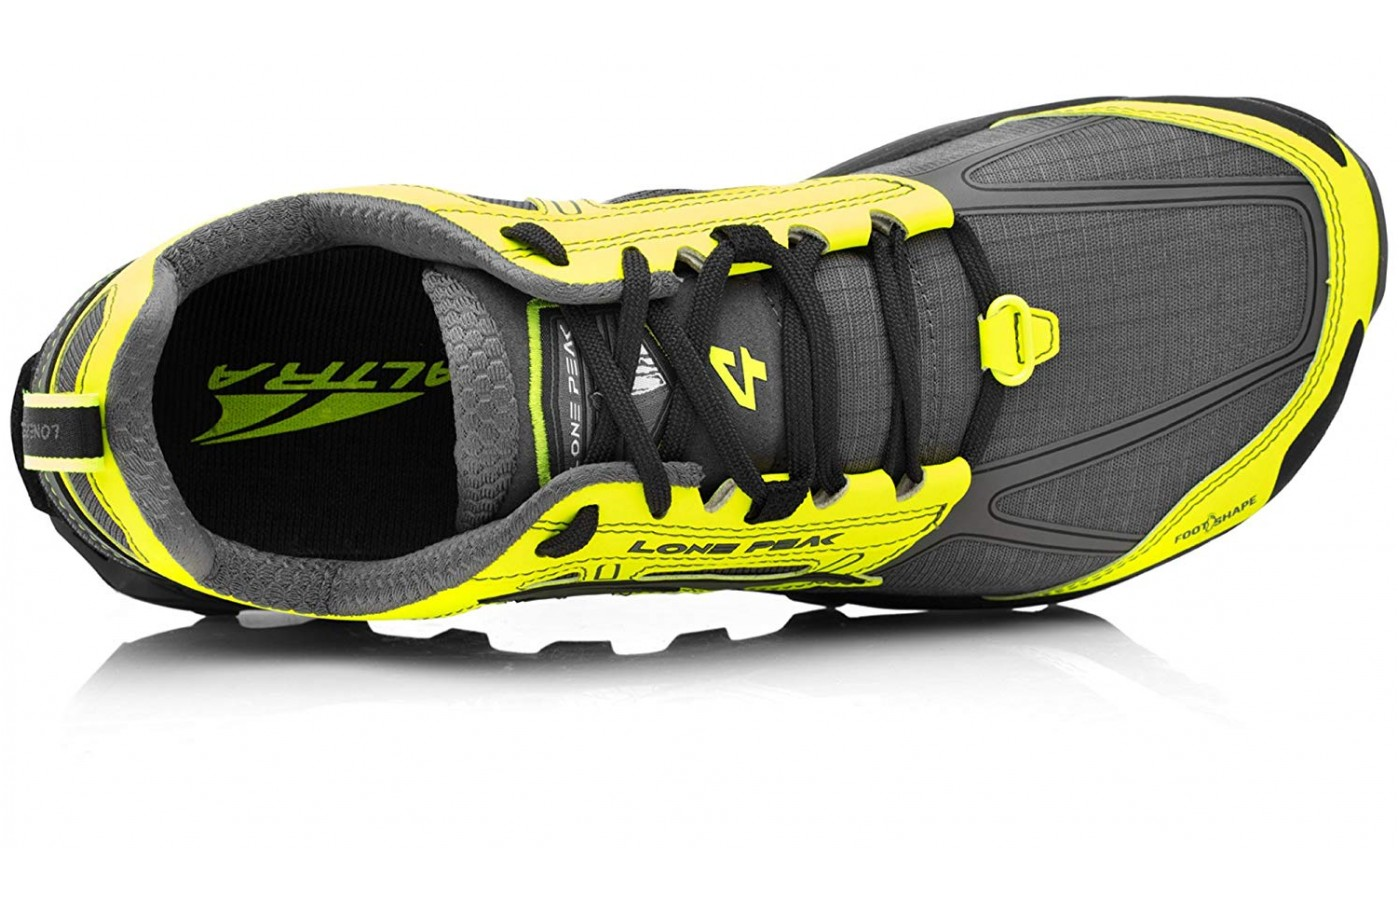 Extra room in the forefoot improves stability and comfort.